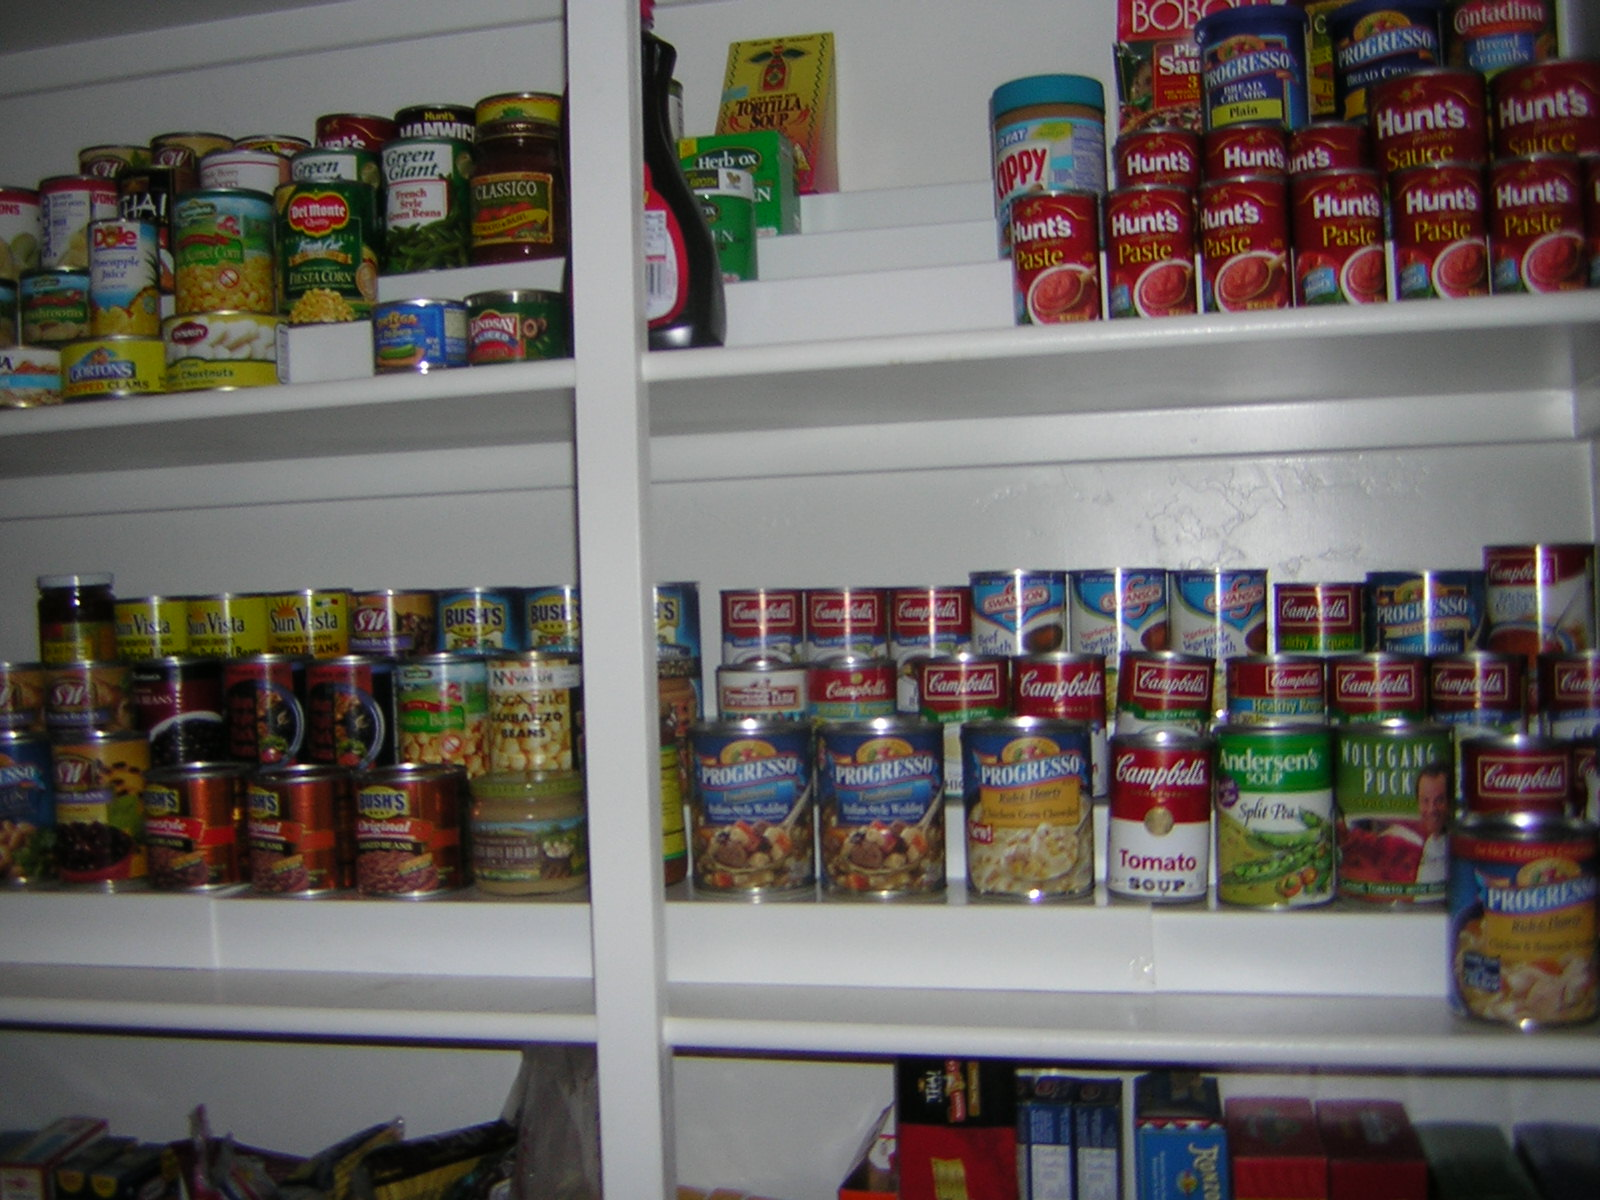 Three Sure Fire Ways To Organize The Canned Goods In Your Pantry